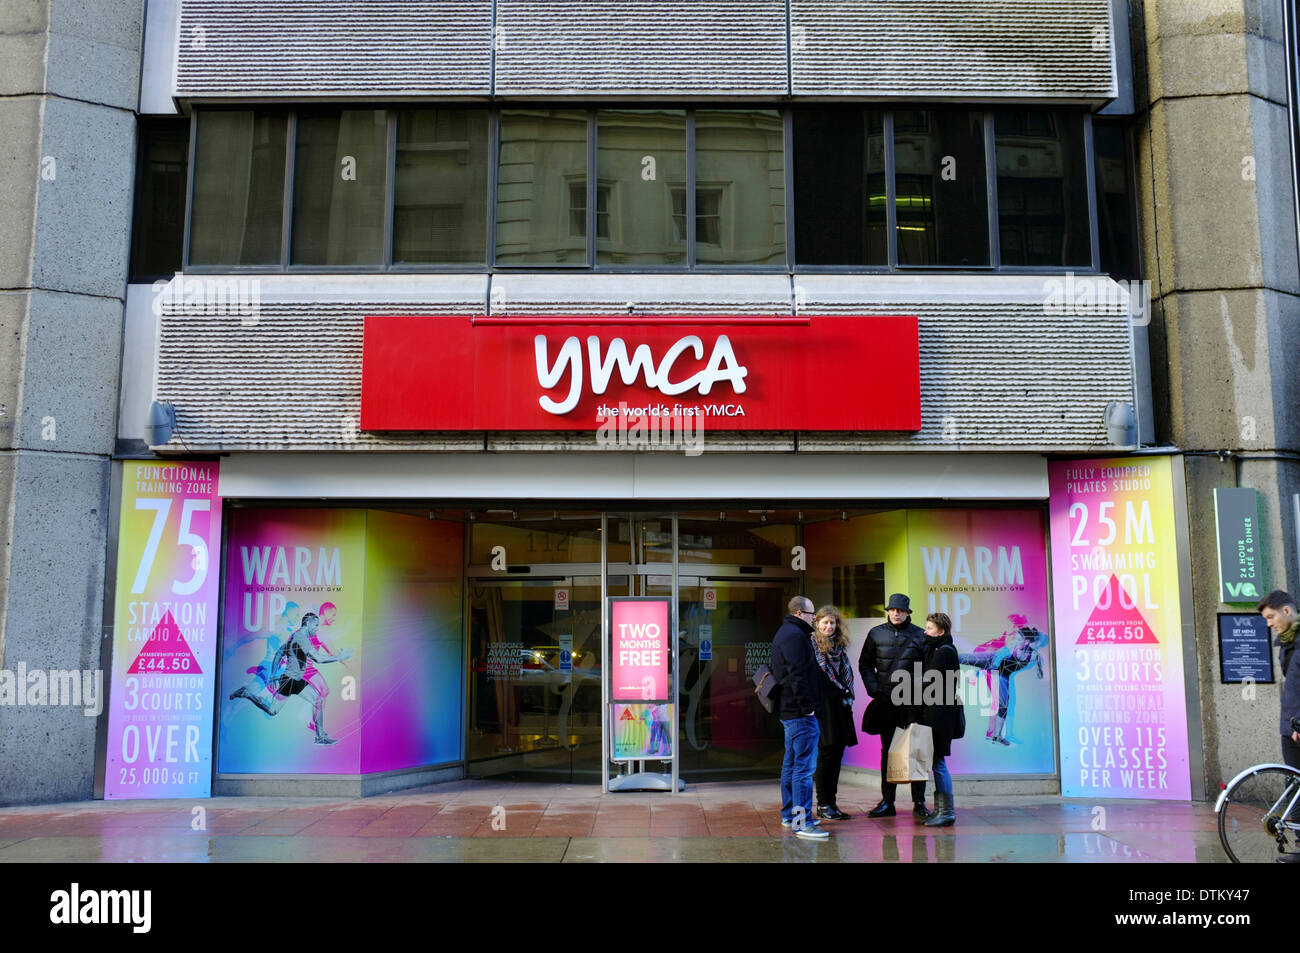 YMCA with people waiting outside, London - Stock Image